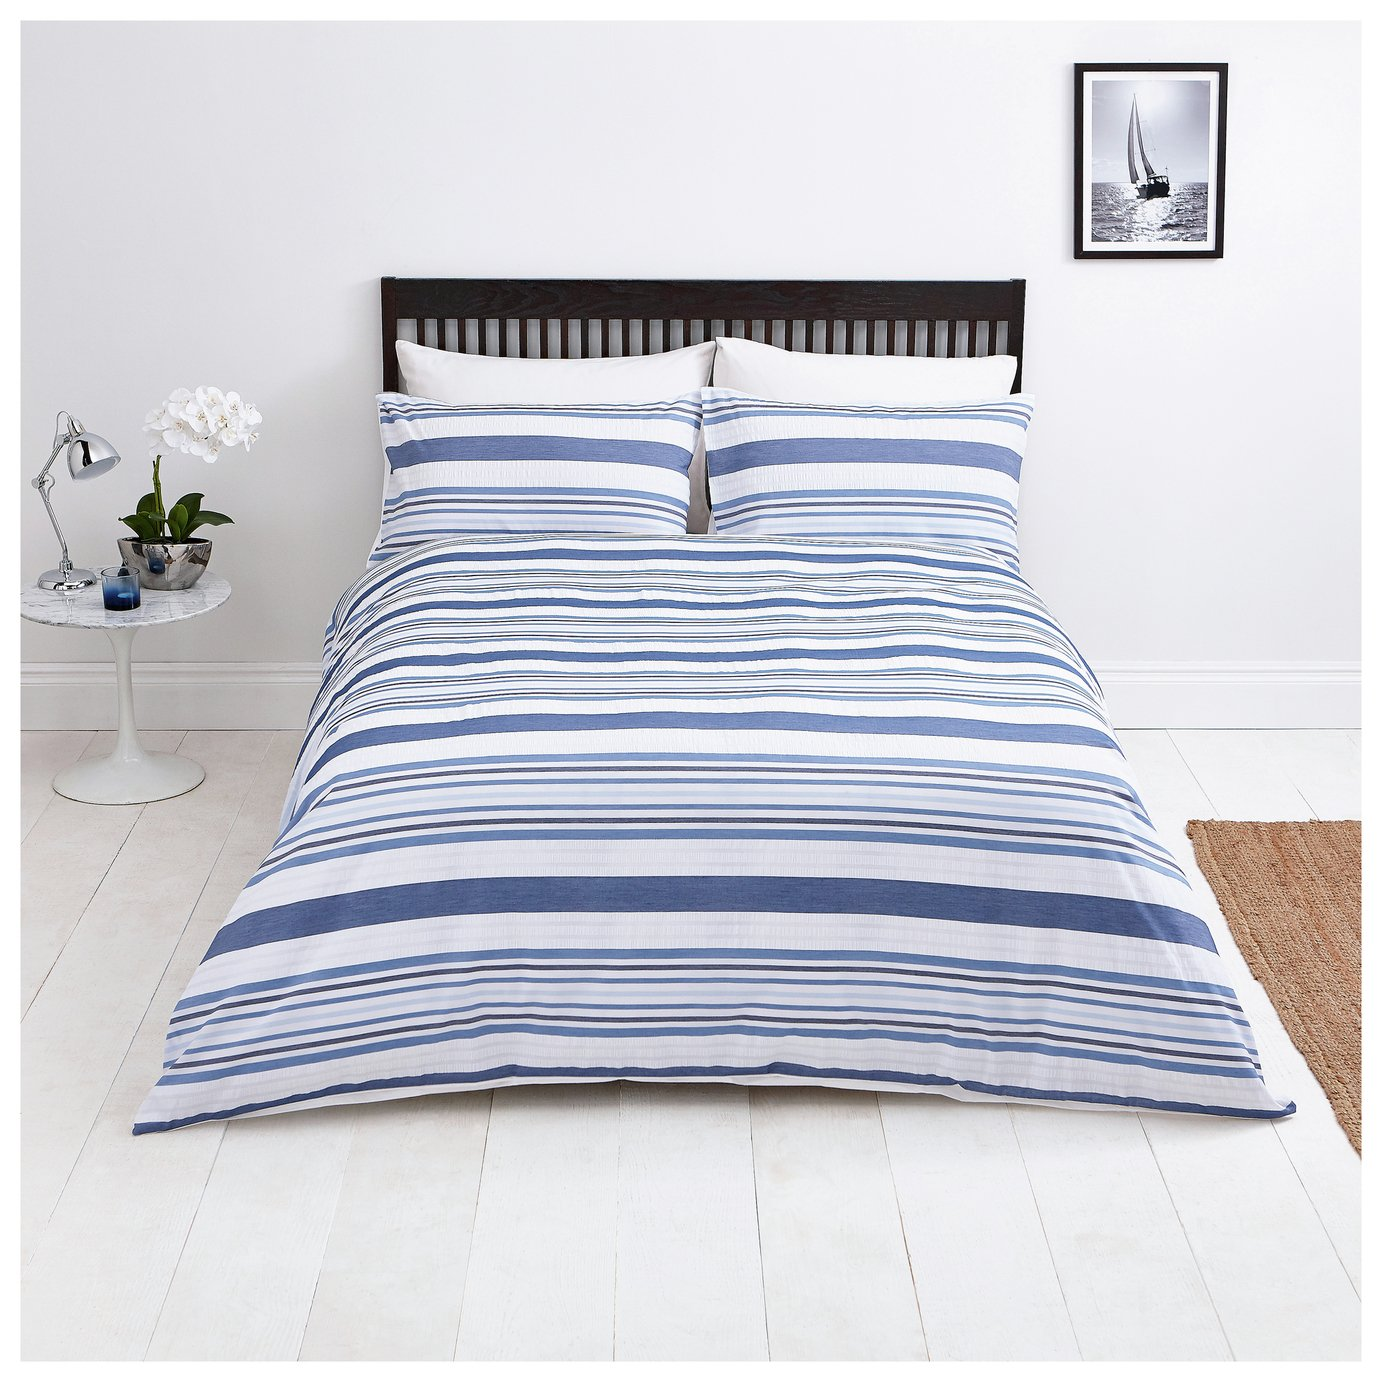 Sainsbury's Home Riviera Seersucker Bedding Set – Kingsize